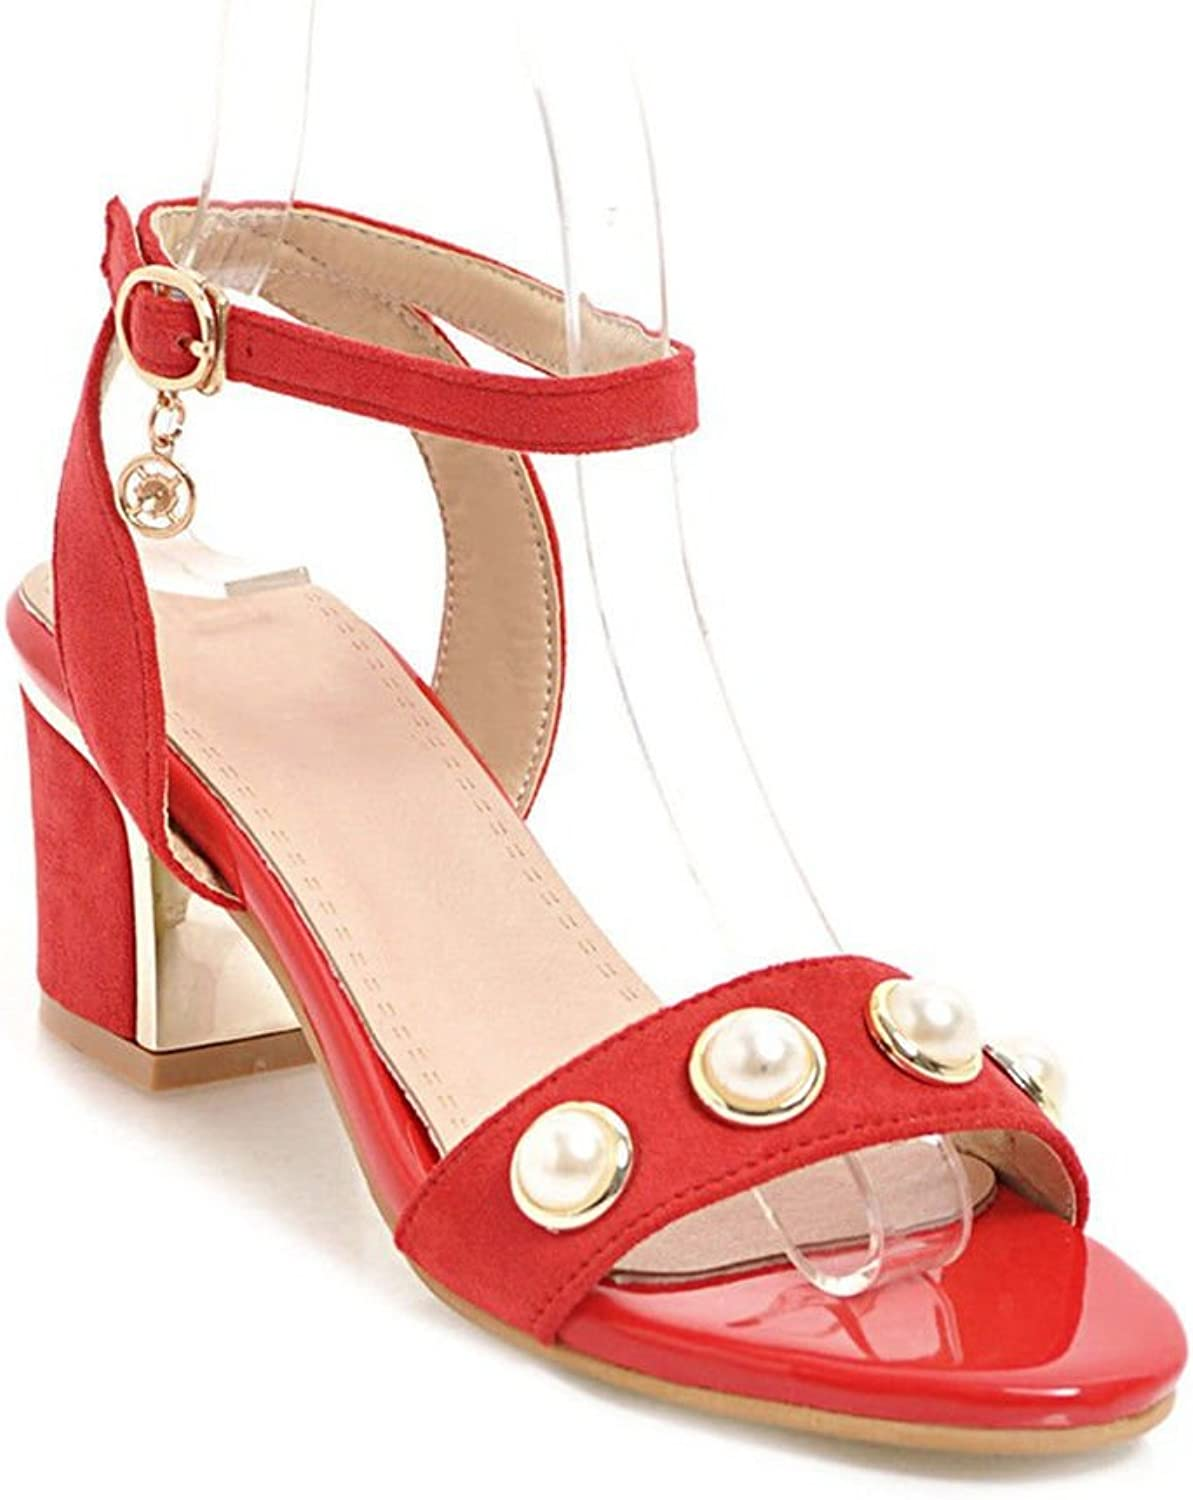 Slotted Buckle Ankle Straps high-Heeled Sandals Thick with Large Numbers of Women shoes